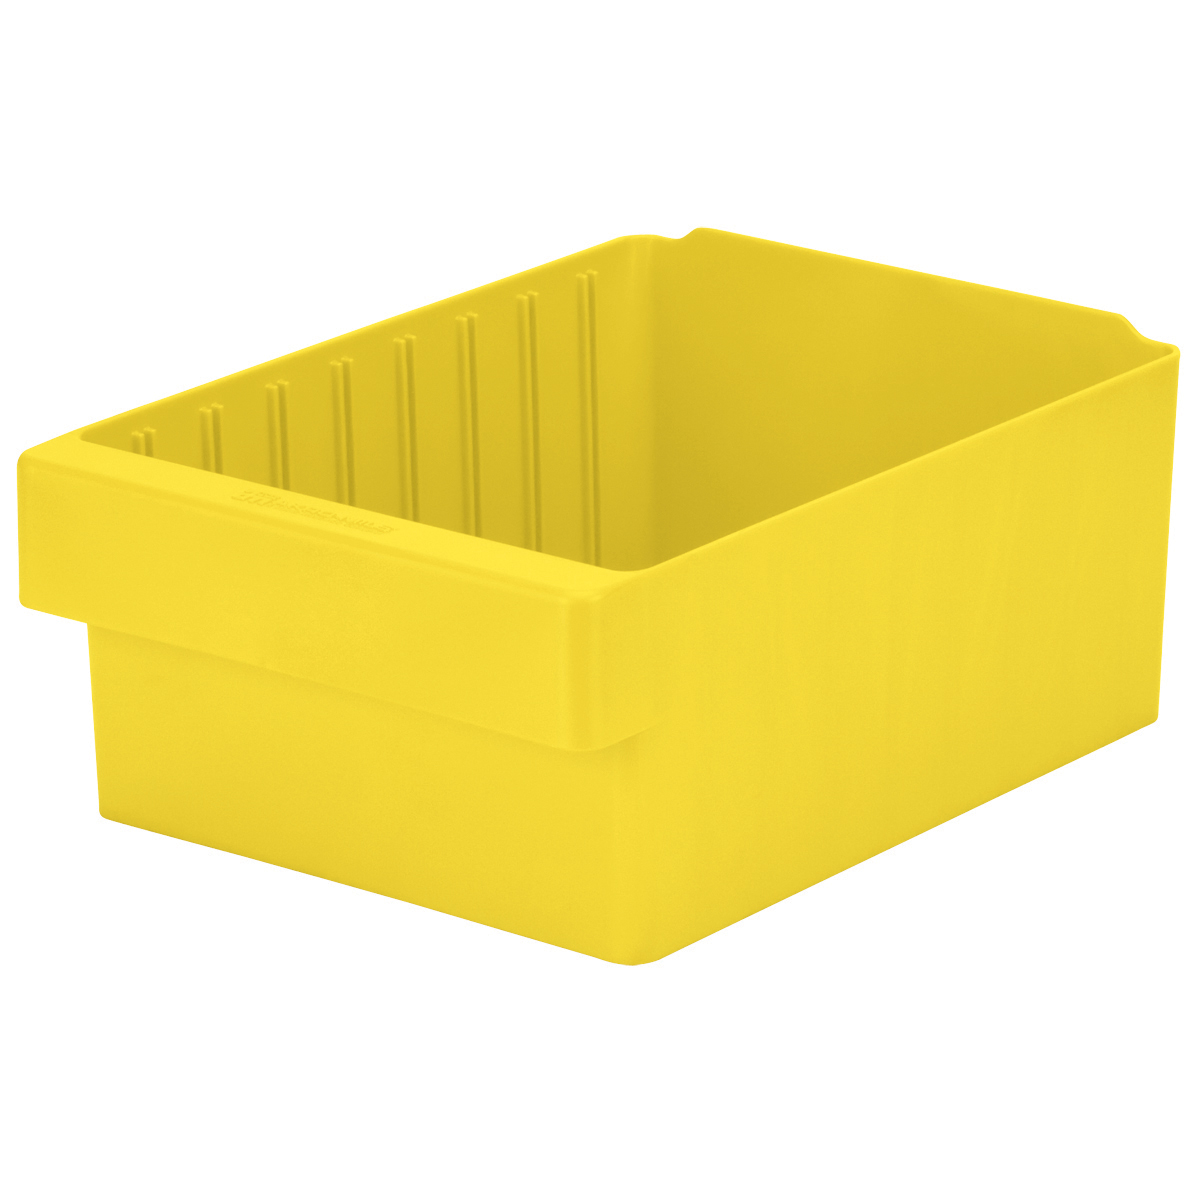 AkroDrawer 11-5/8 x 8-3/8 x 4-5/8, Yellow (31182YEL).  This item sold in carton quantities of 4.